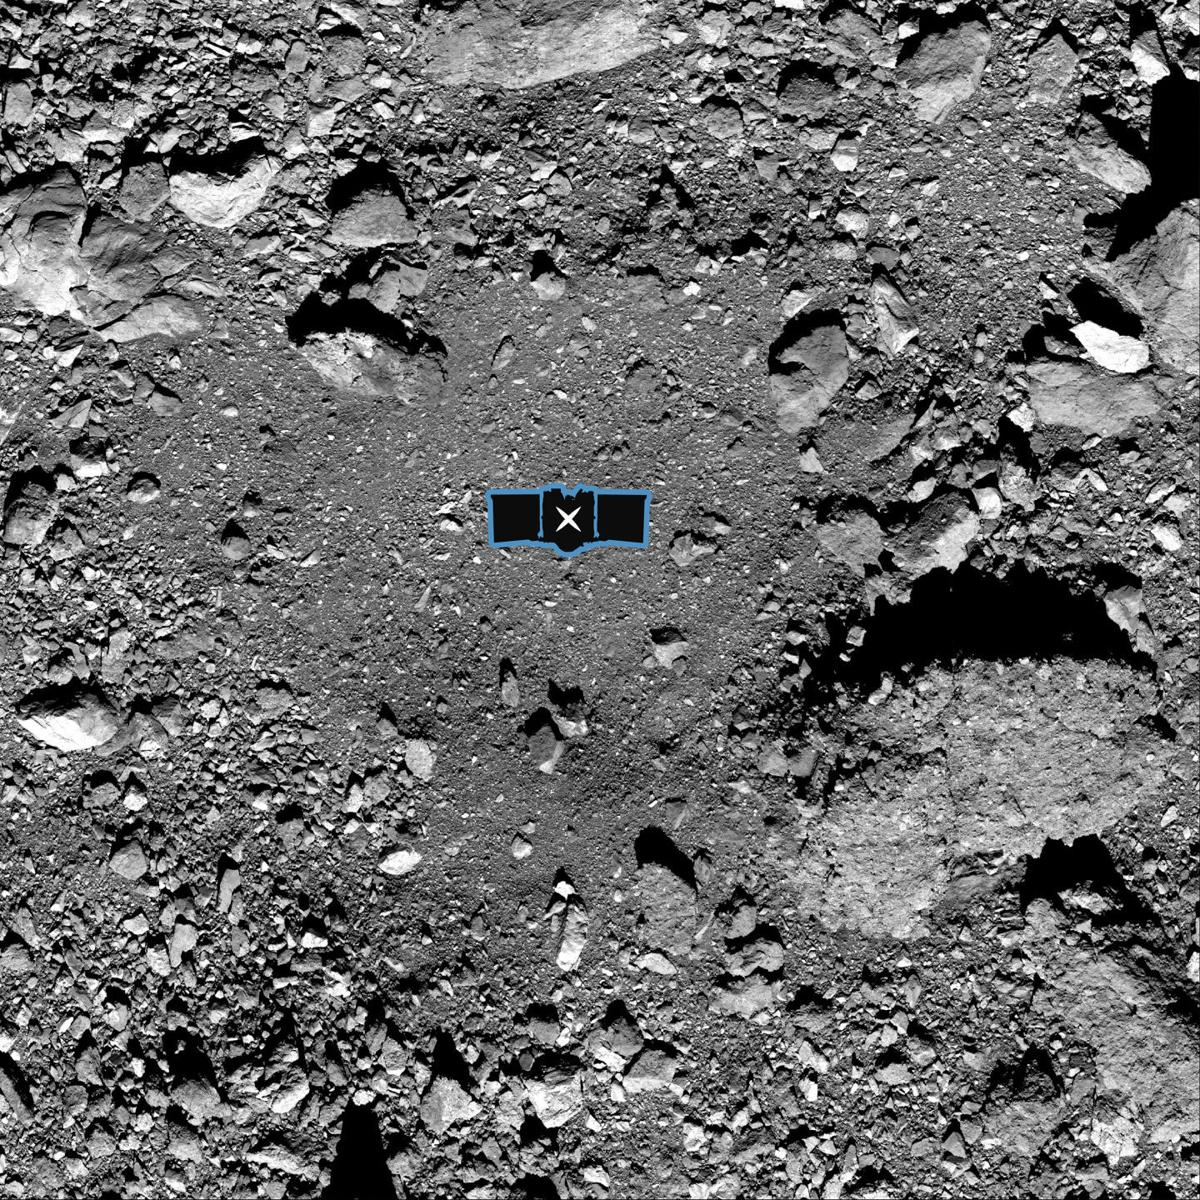 OSIRIS-REx sample site